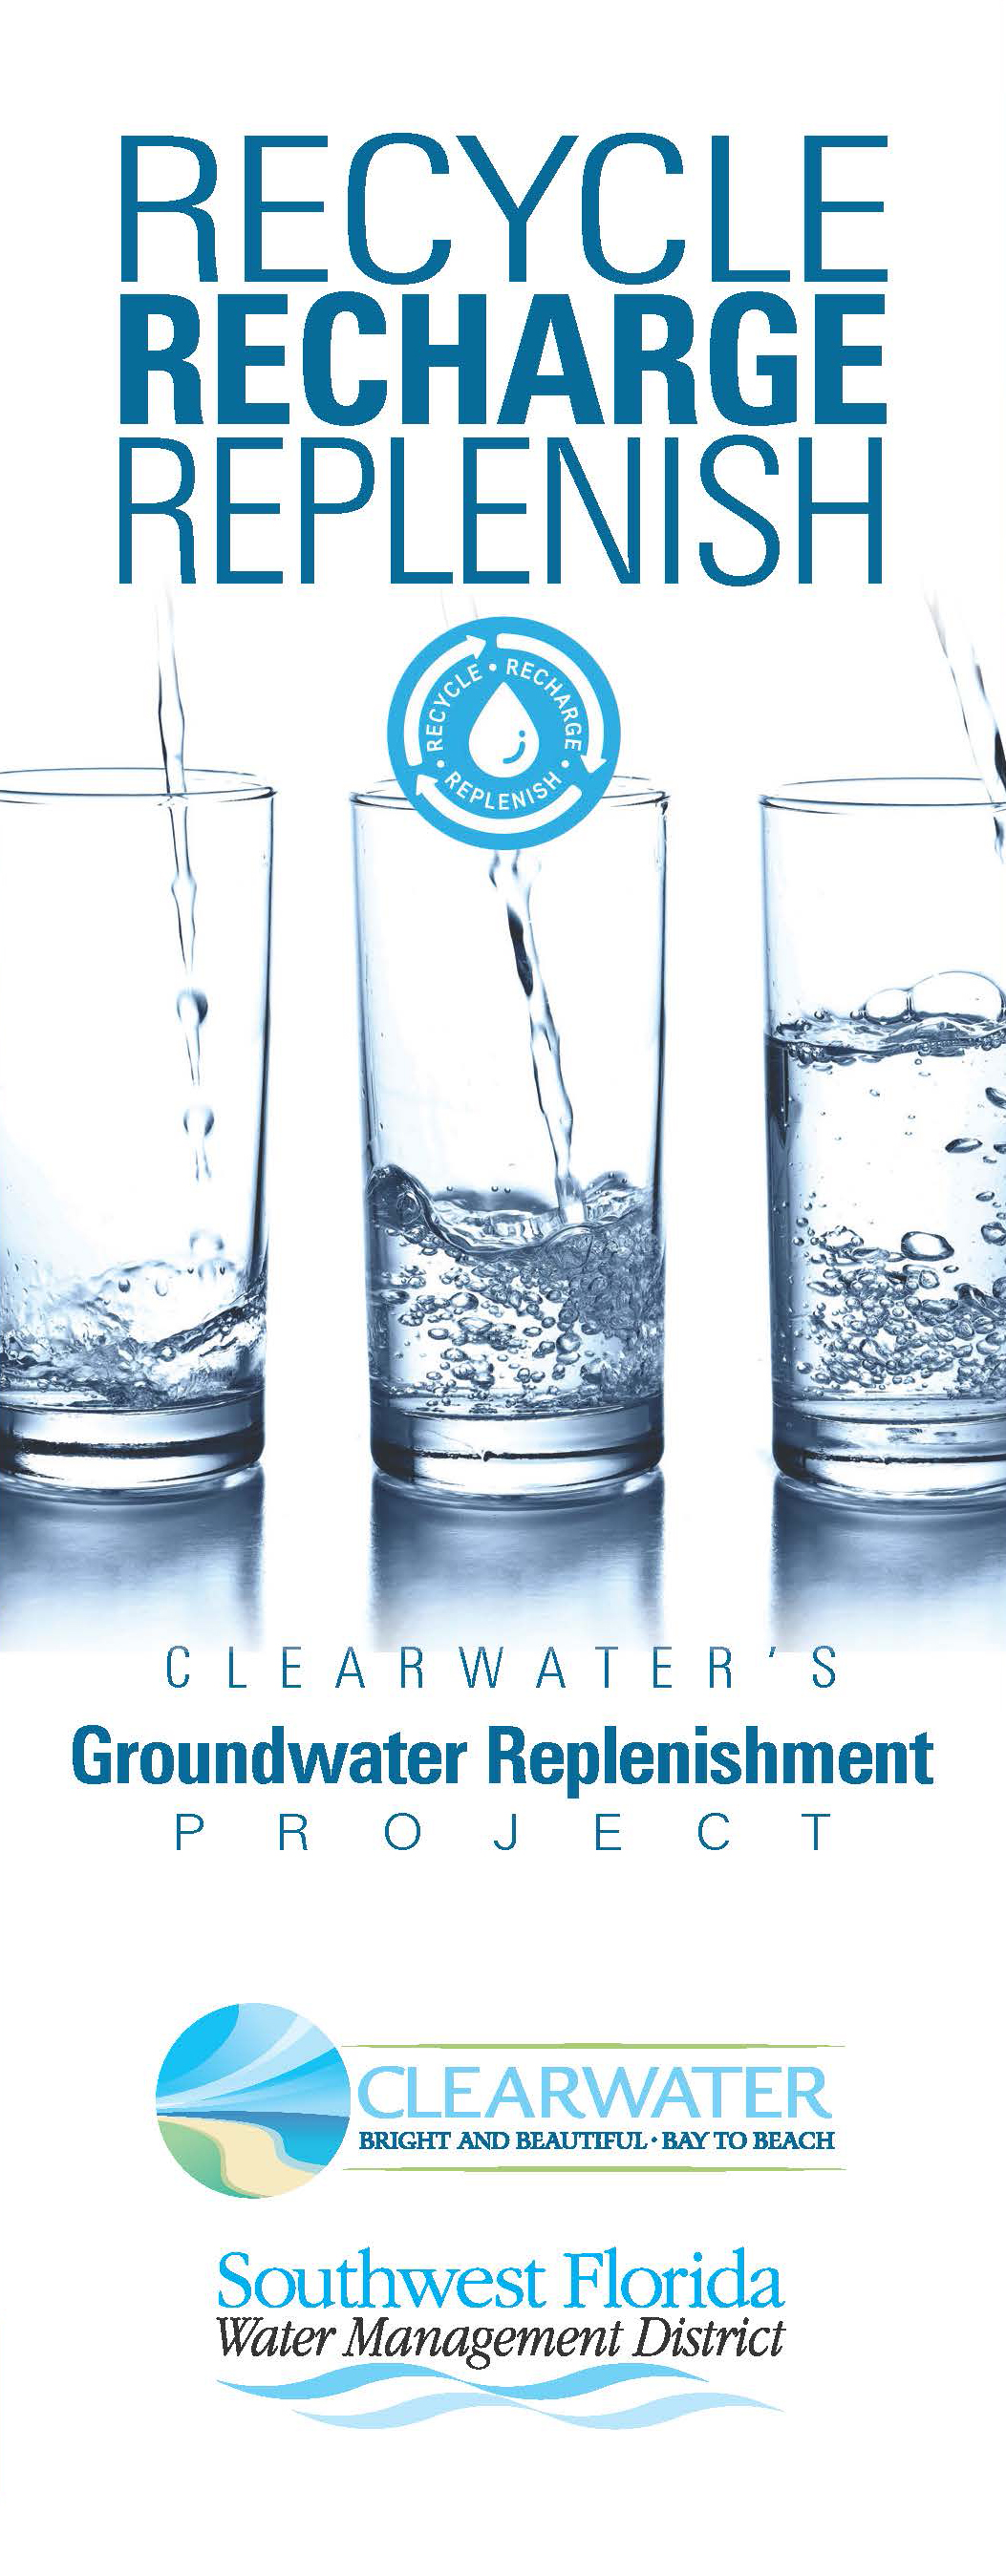 groundwater replenishment potable reuse toilet tap recycle recharge replenish